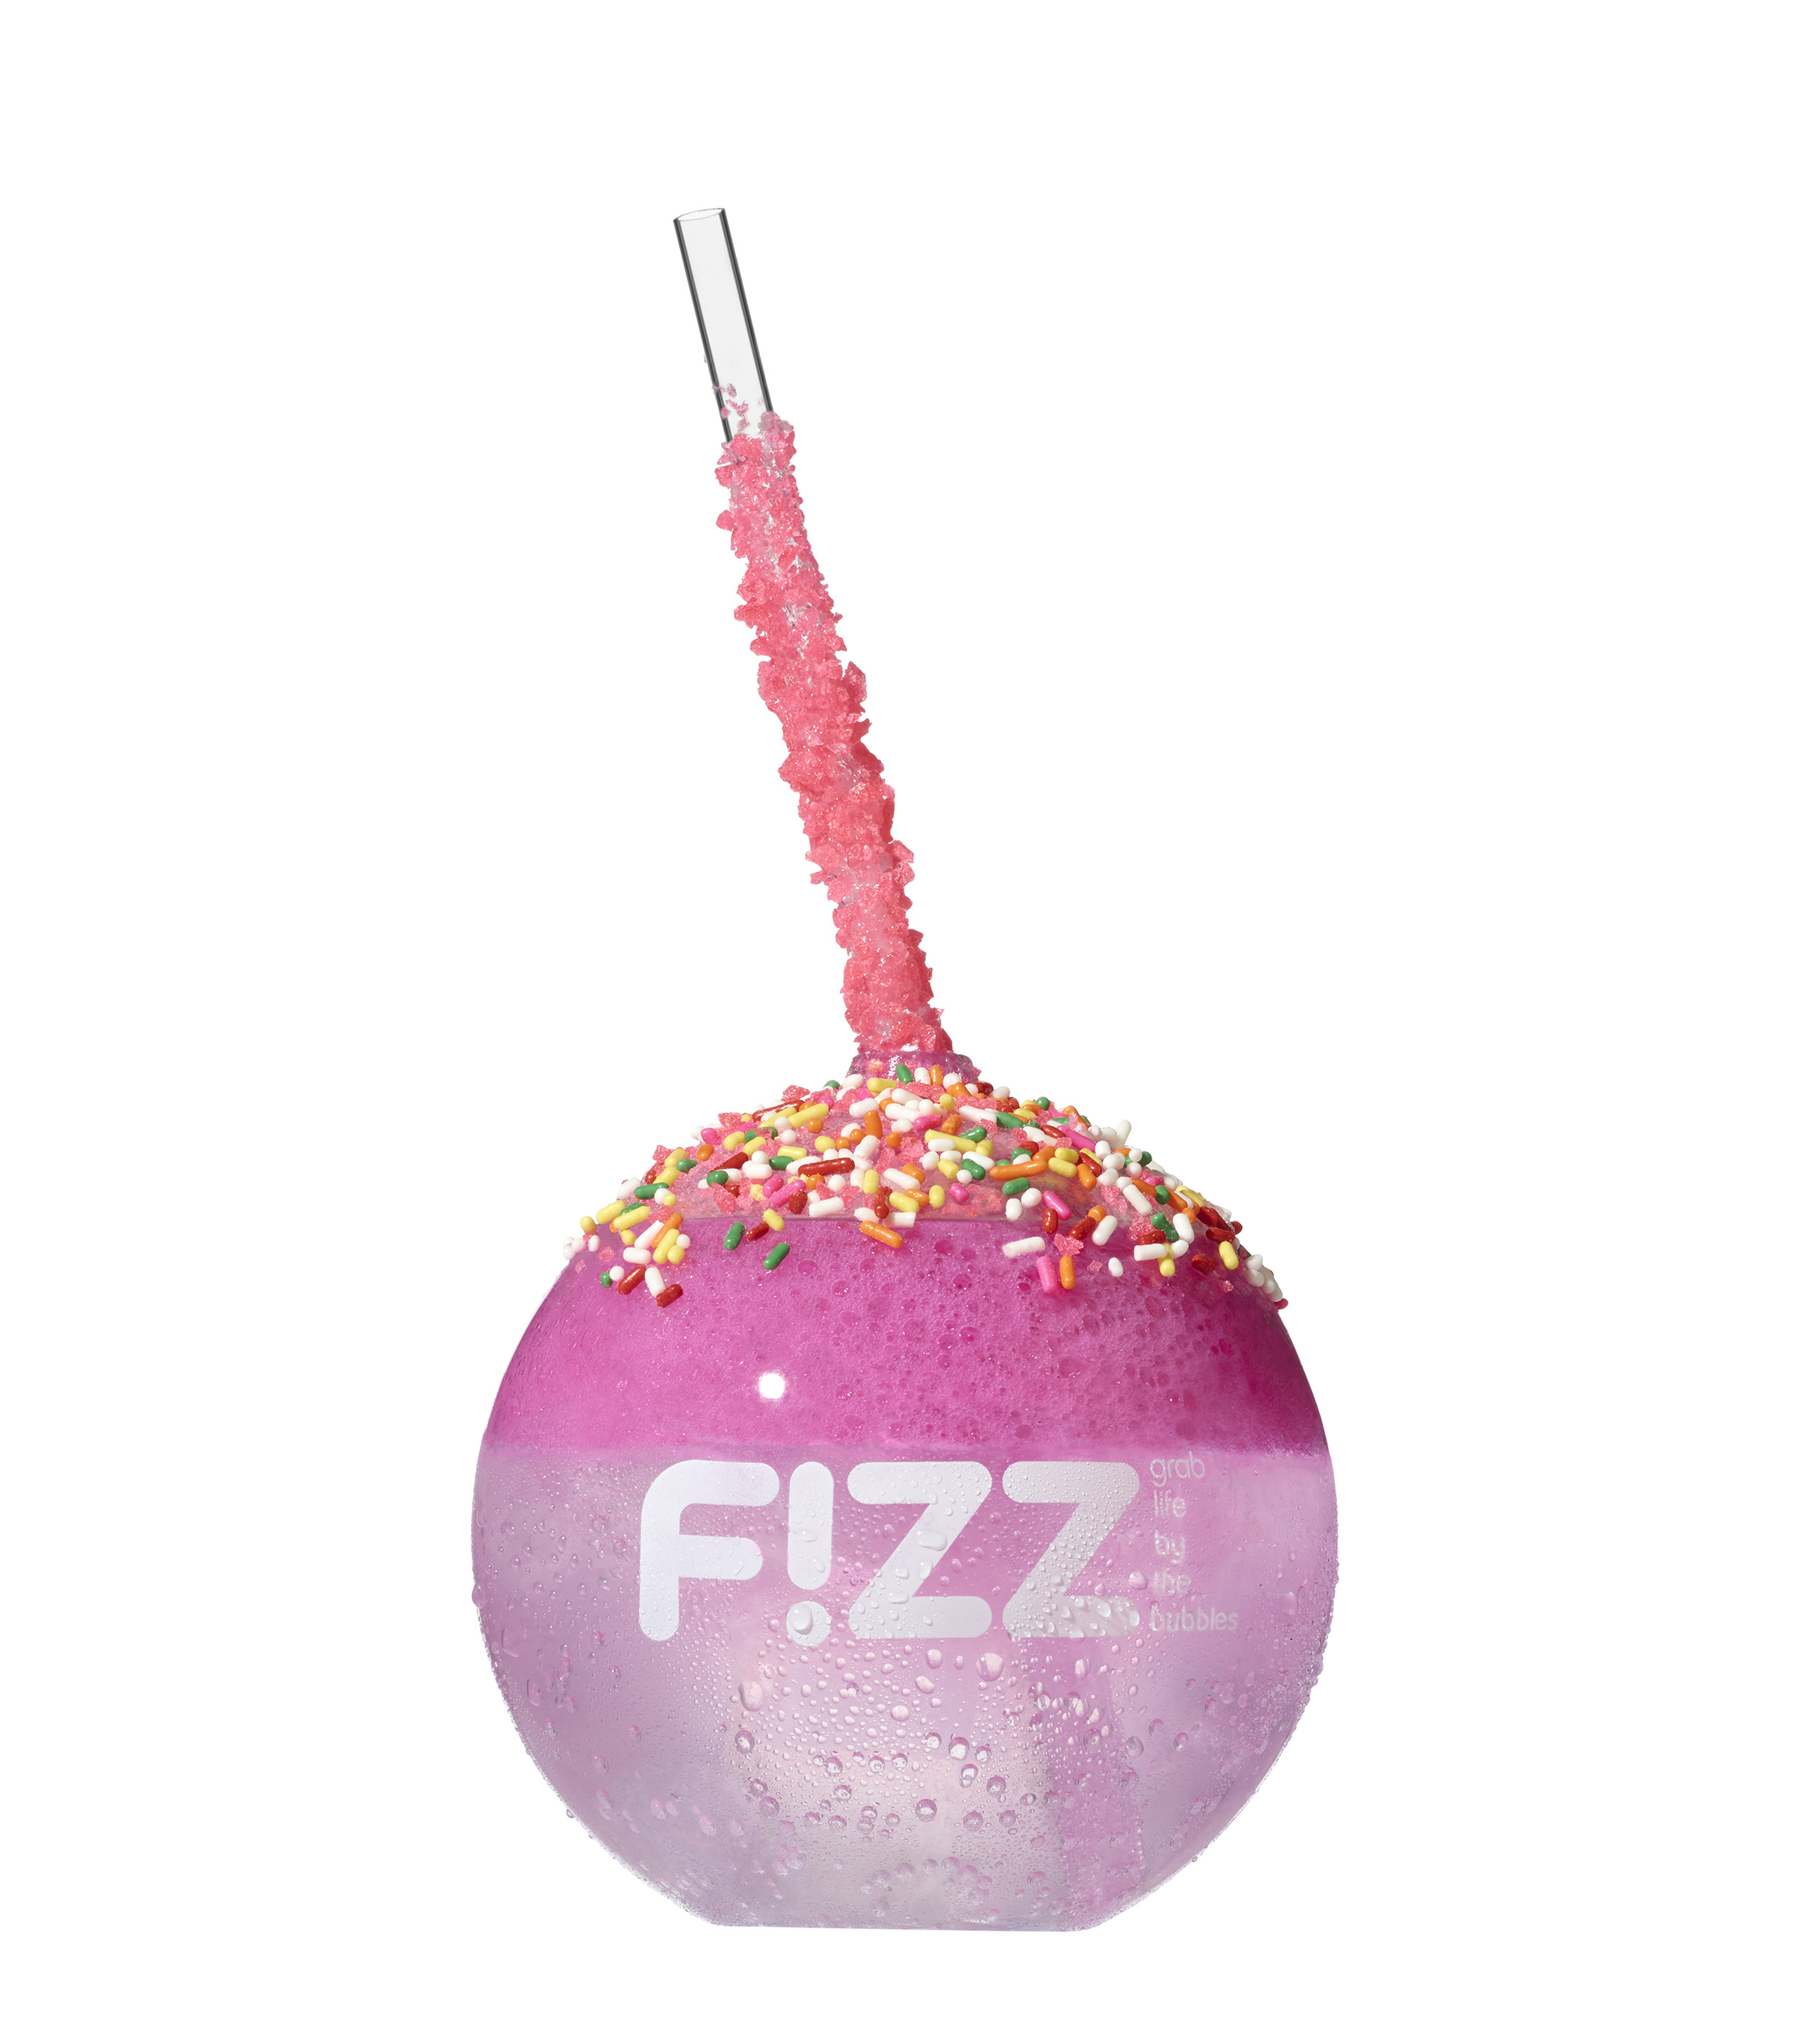 """Onside Cake"" combines Sierra Mist or Diet Sierra Mist, vanilla & cake batter flavor shot, vanilla foam, rainbow sprinkles and strawberry pop rocks #discoverfizz"